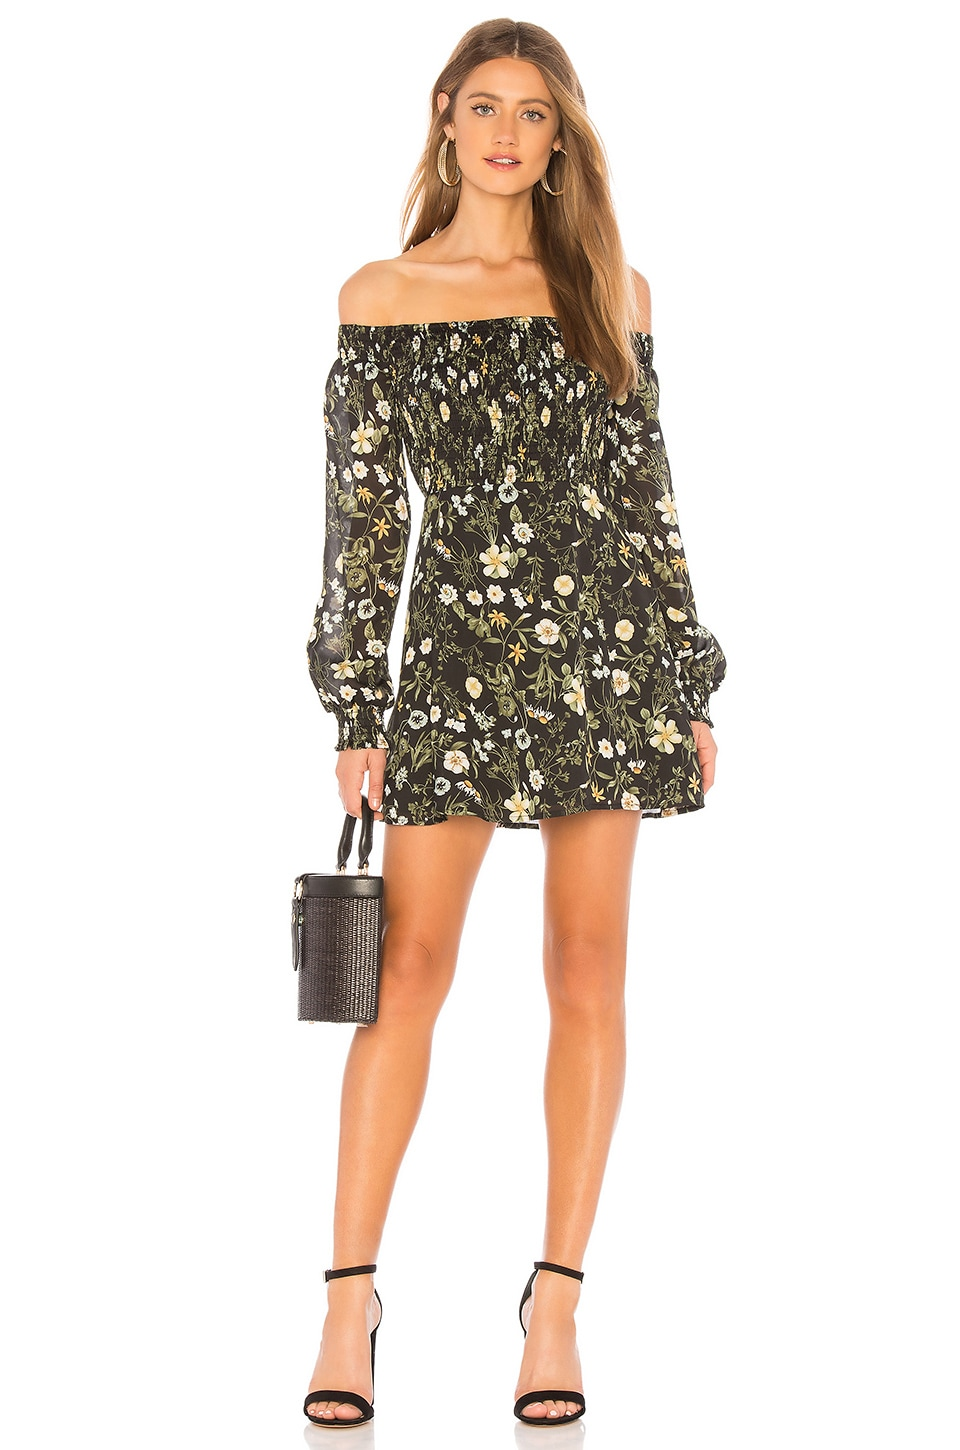 About Us Cyone Smocked Dress in Black Floral